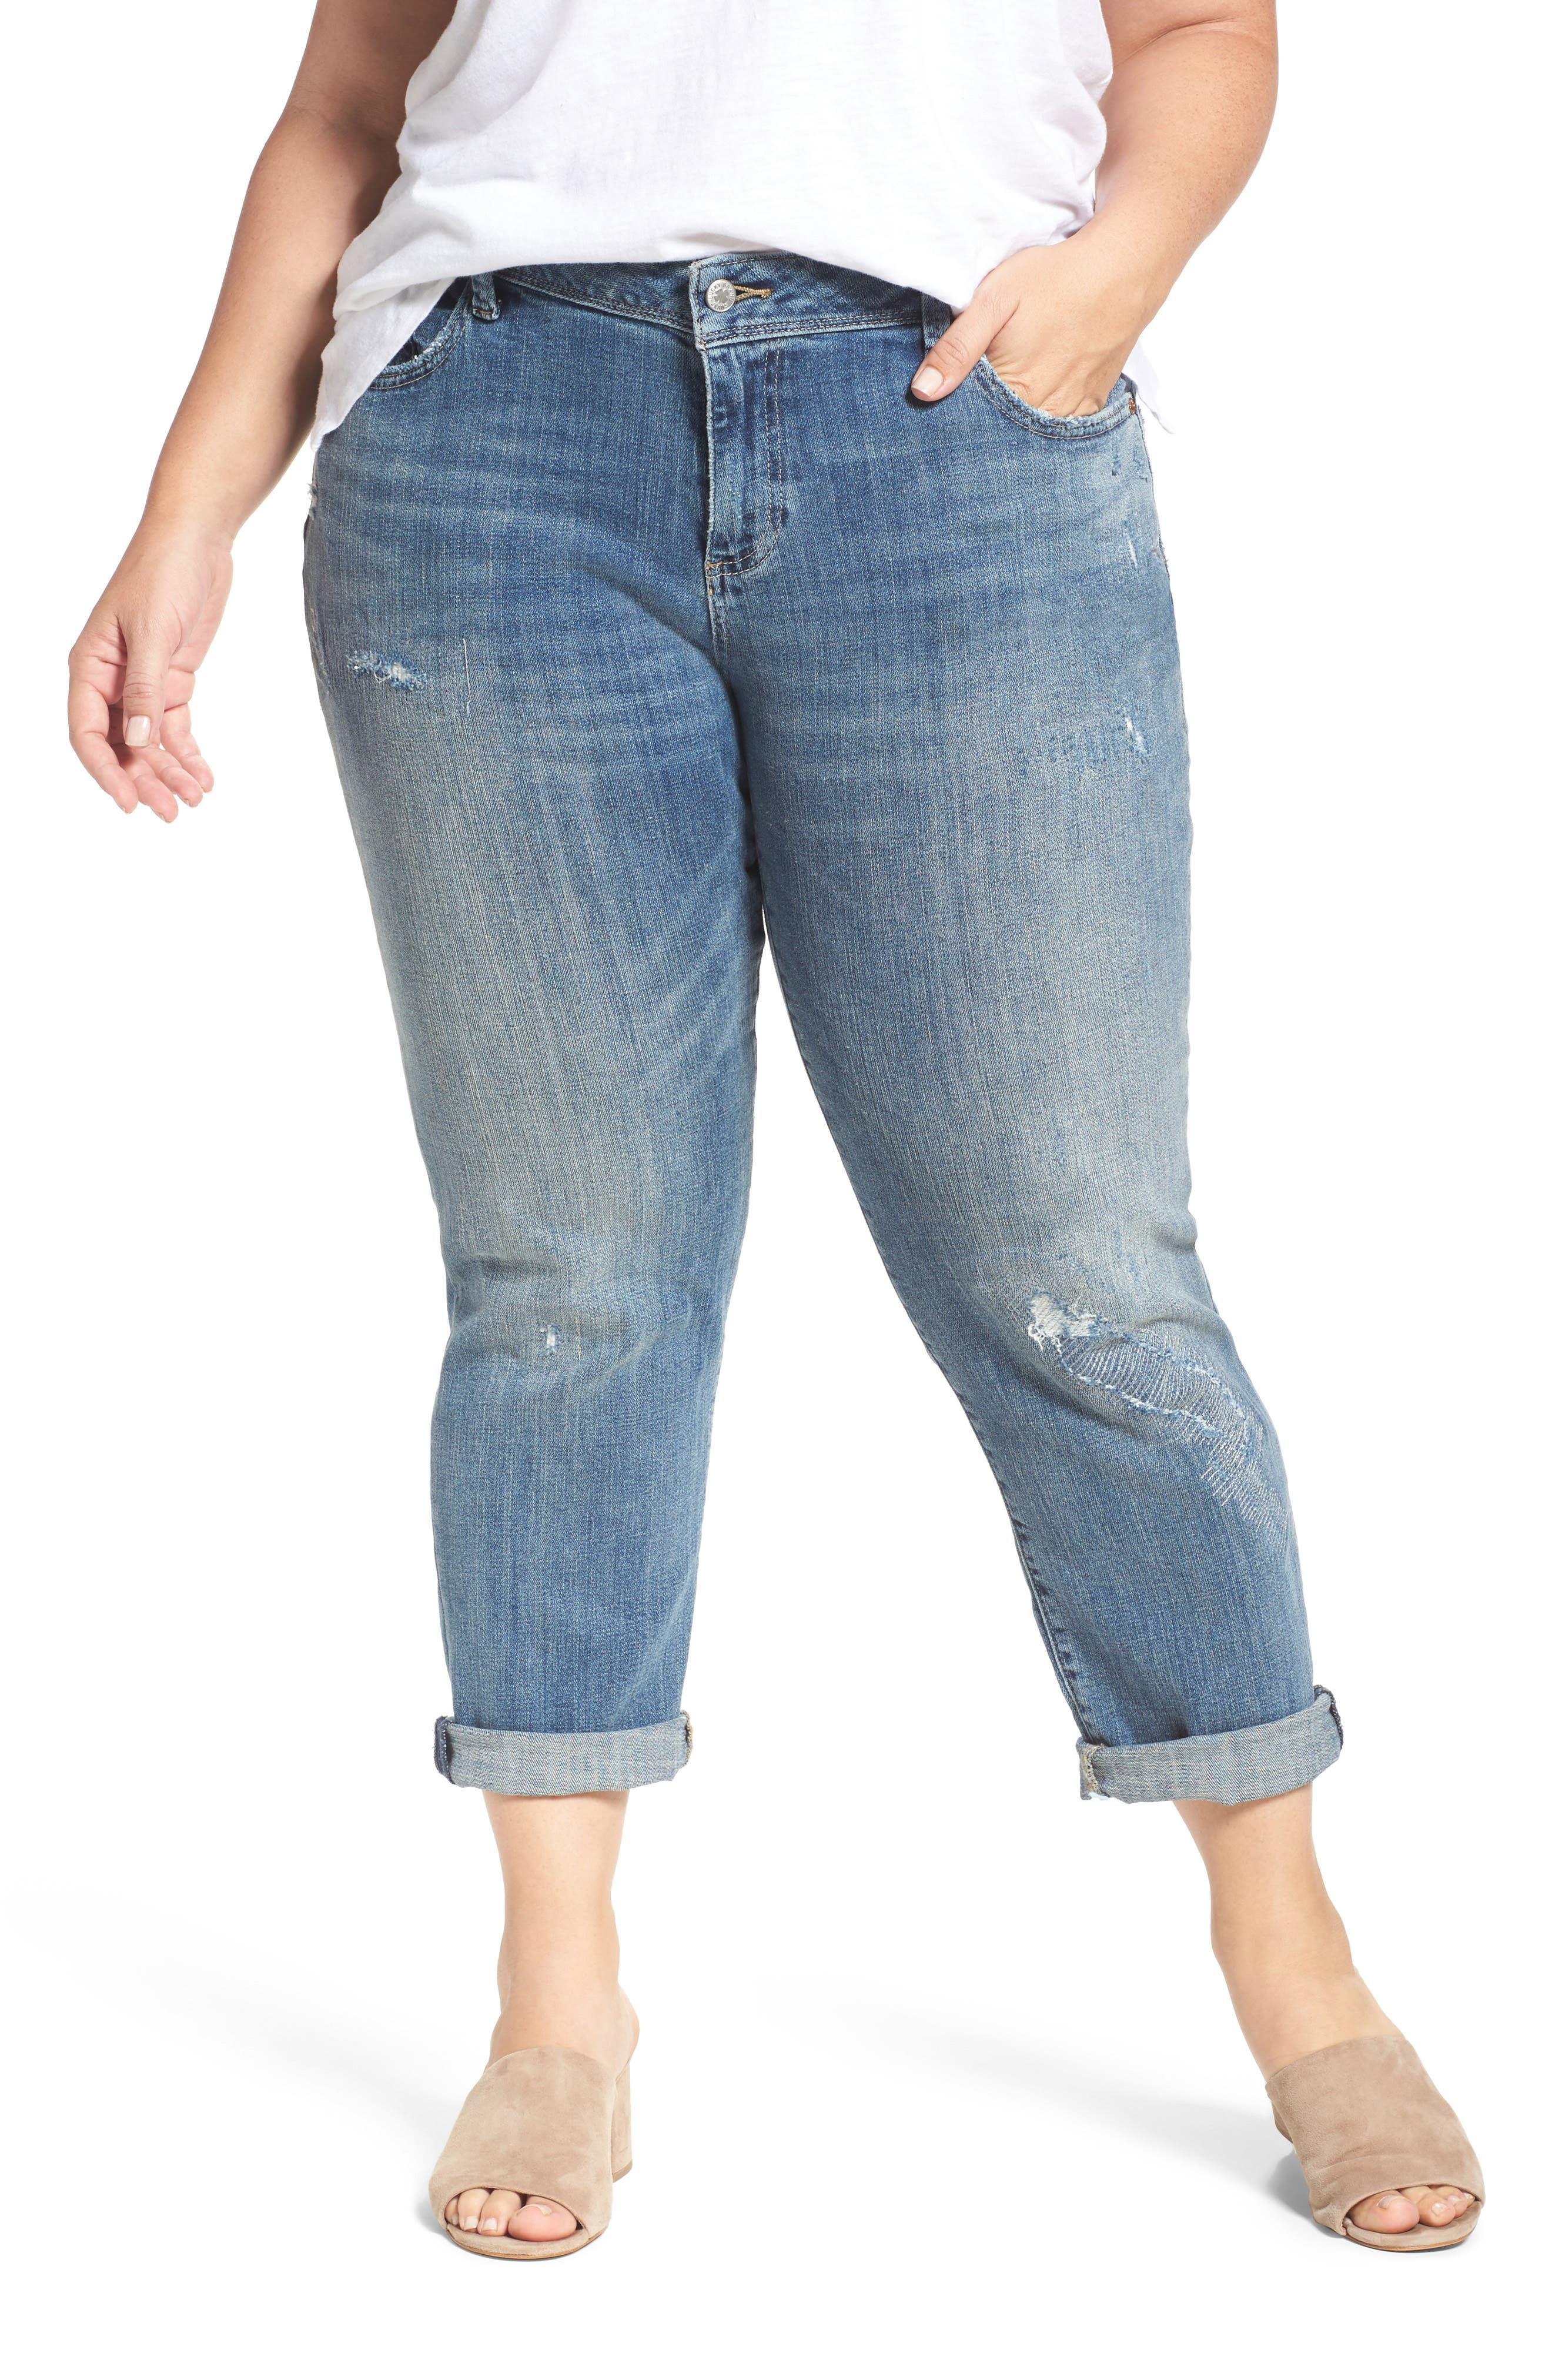 Alternate Image 1 Selected - Lucky Brand Reese Distressed Stretch Boyfriend Jeans (Plus Size)